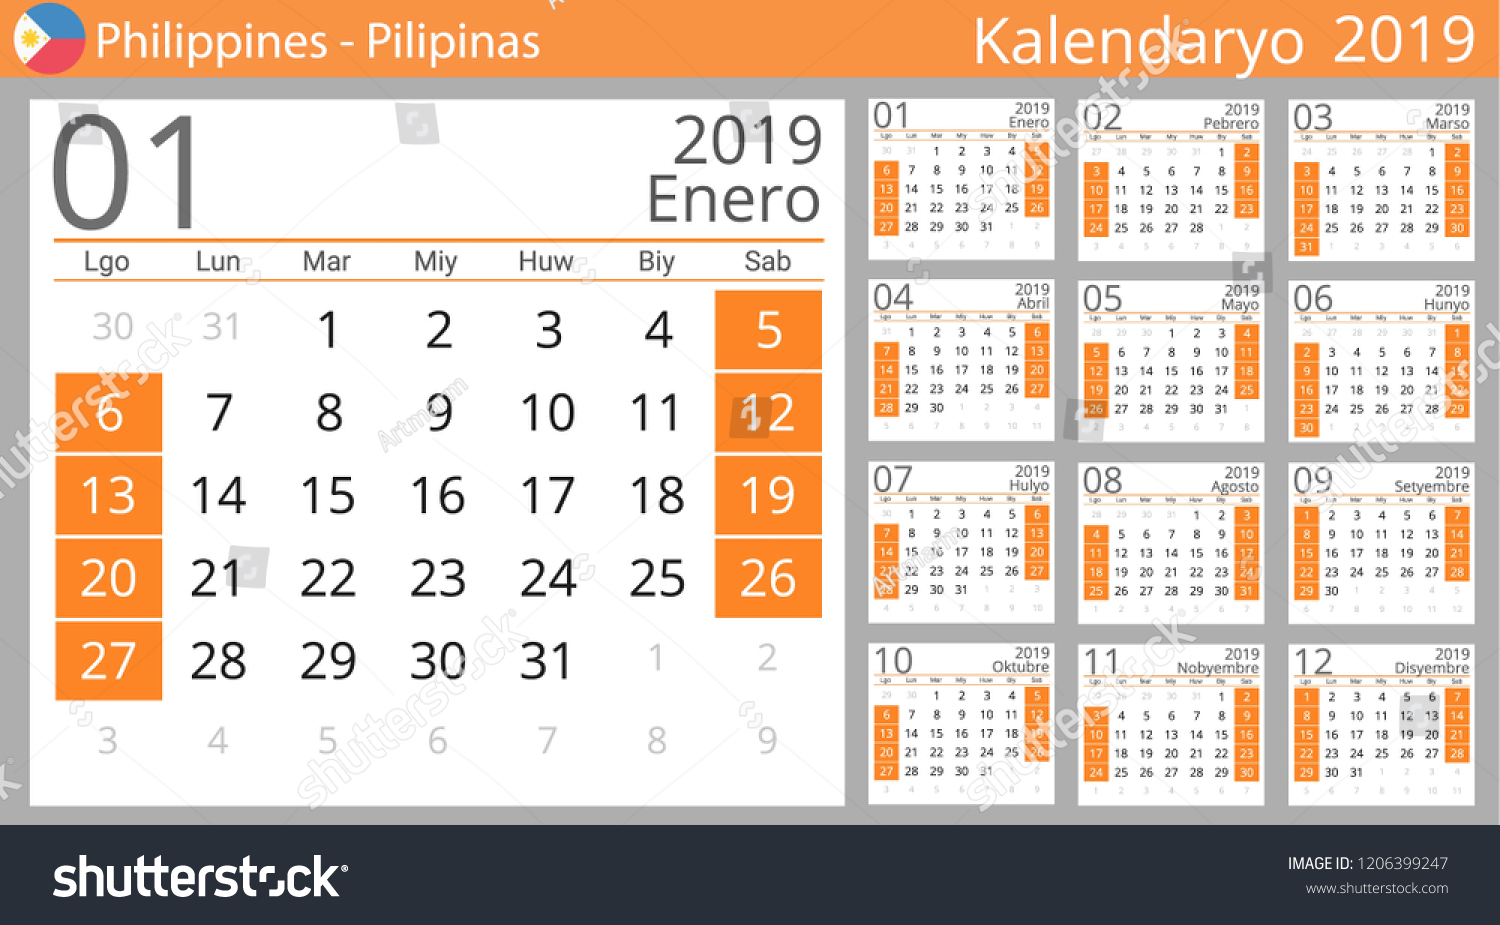 calendar 2019 year for philippines country philippine language set of 12 months week